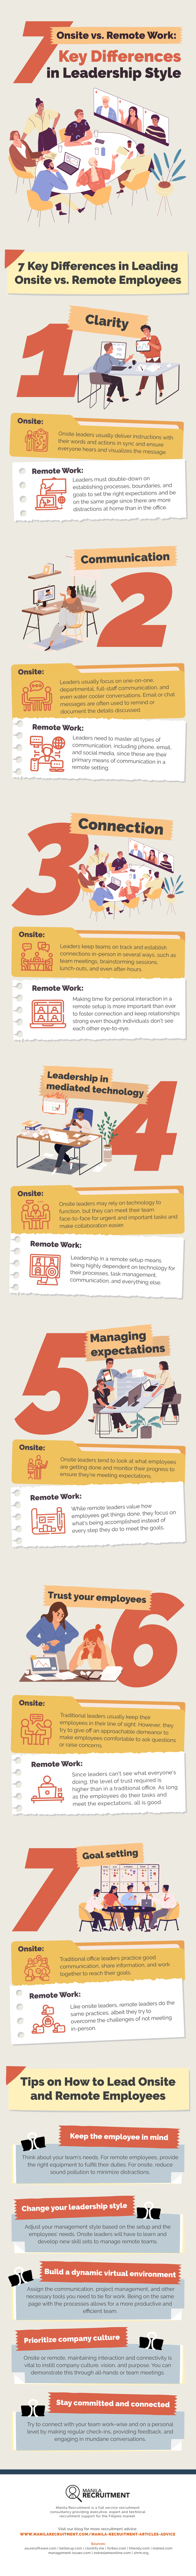 Onsite vs. Remote Work: 7 Key Differences in Leadership Style